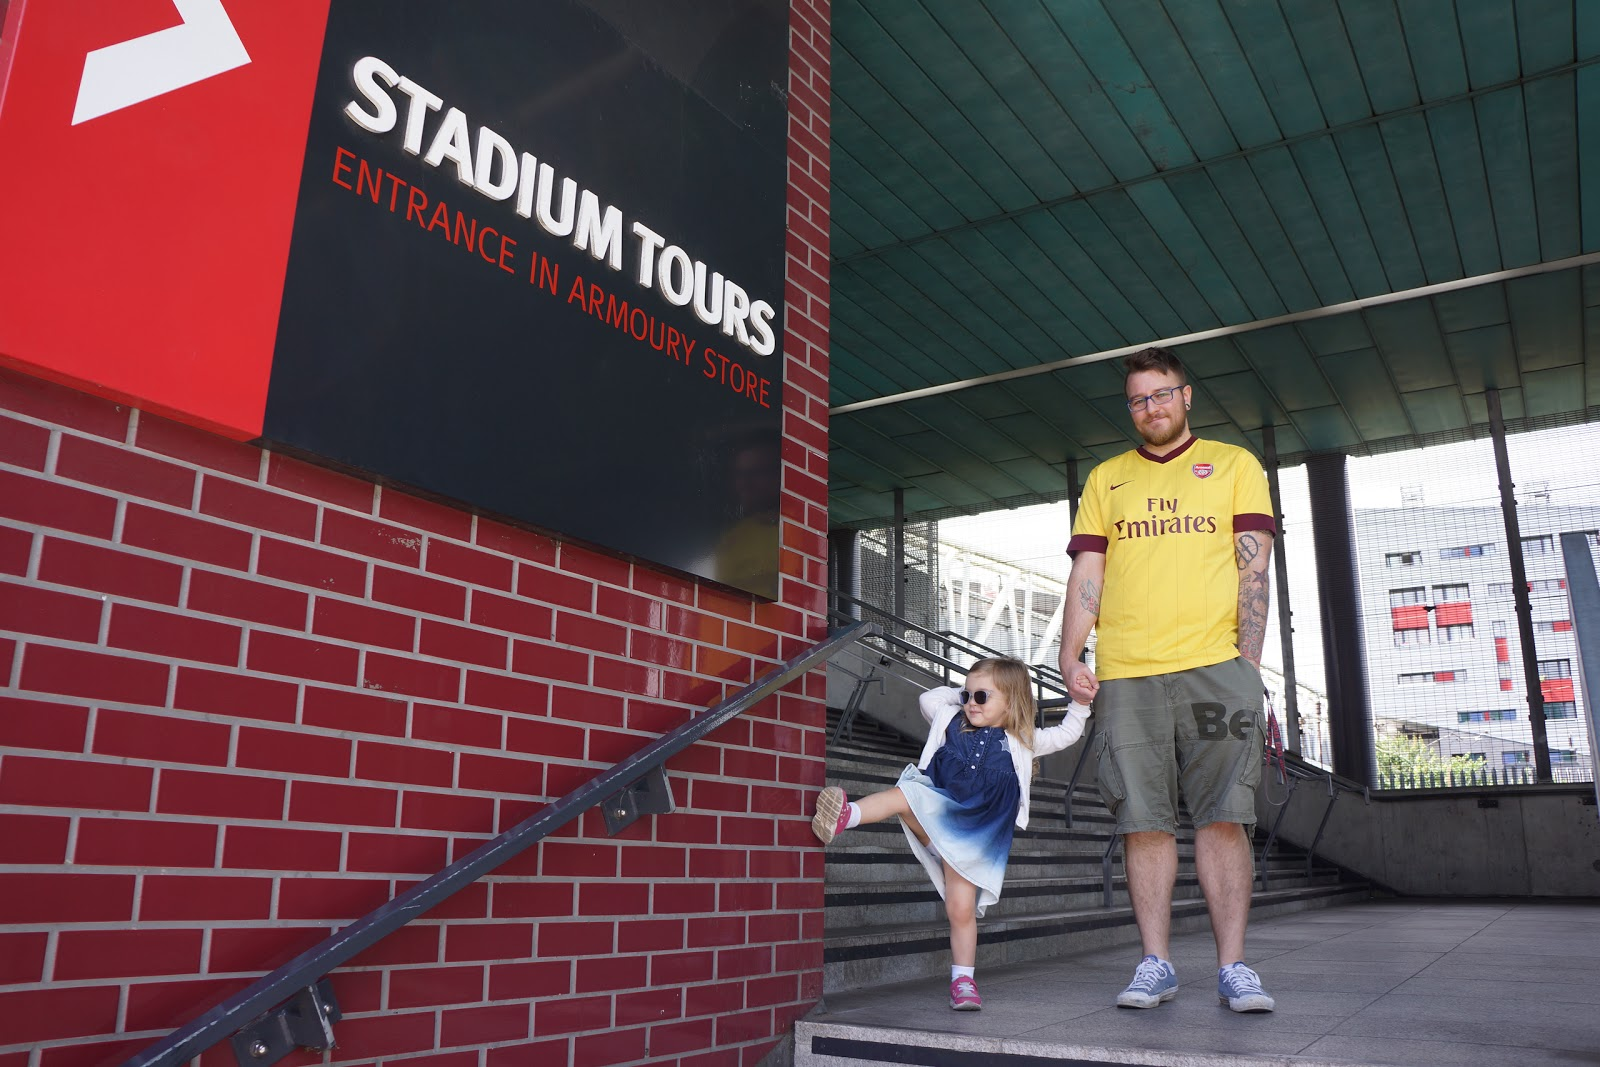 What the Arsenal Stadium Tour is like? At the Arsenal entrance